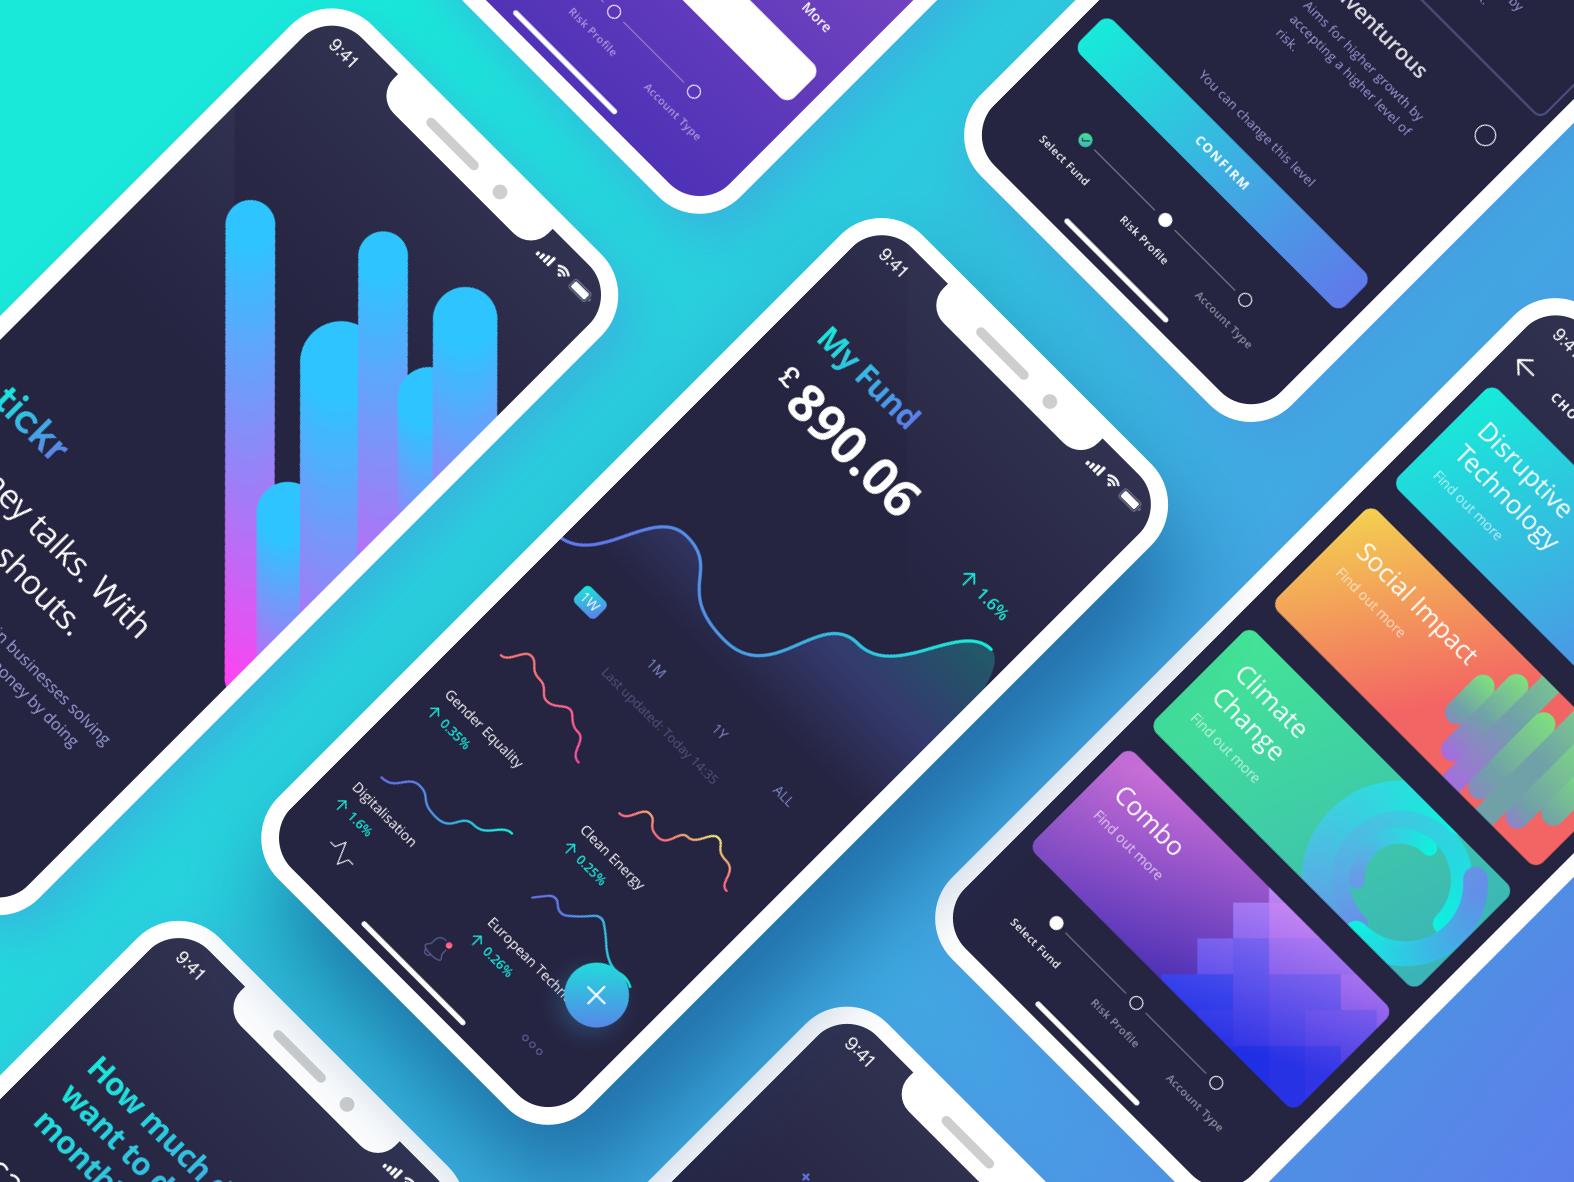 Investment Brand + App UI finance investment invest darkui fintech design app flat branding mobile ios gradient interface purple ux clean ui